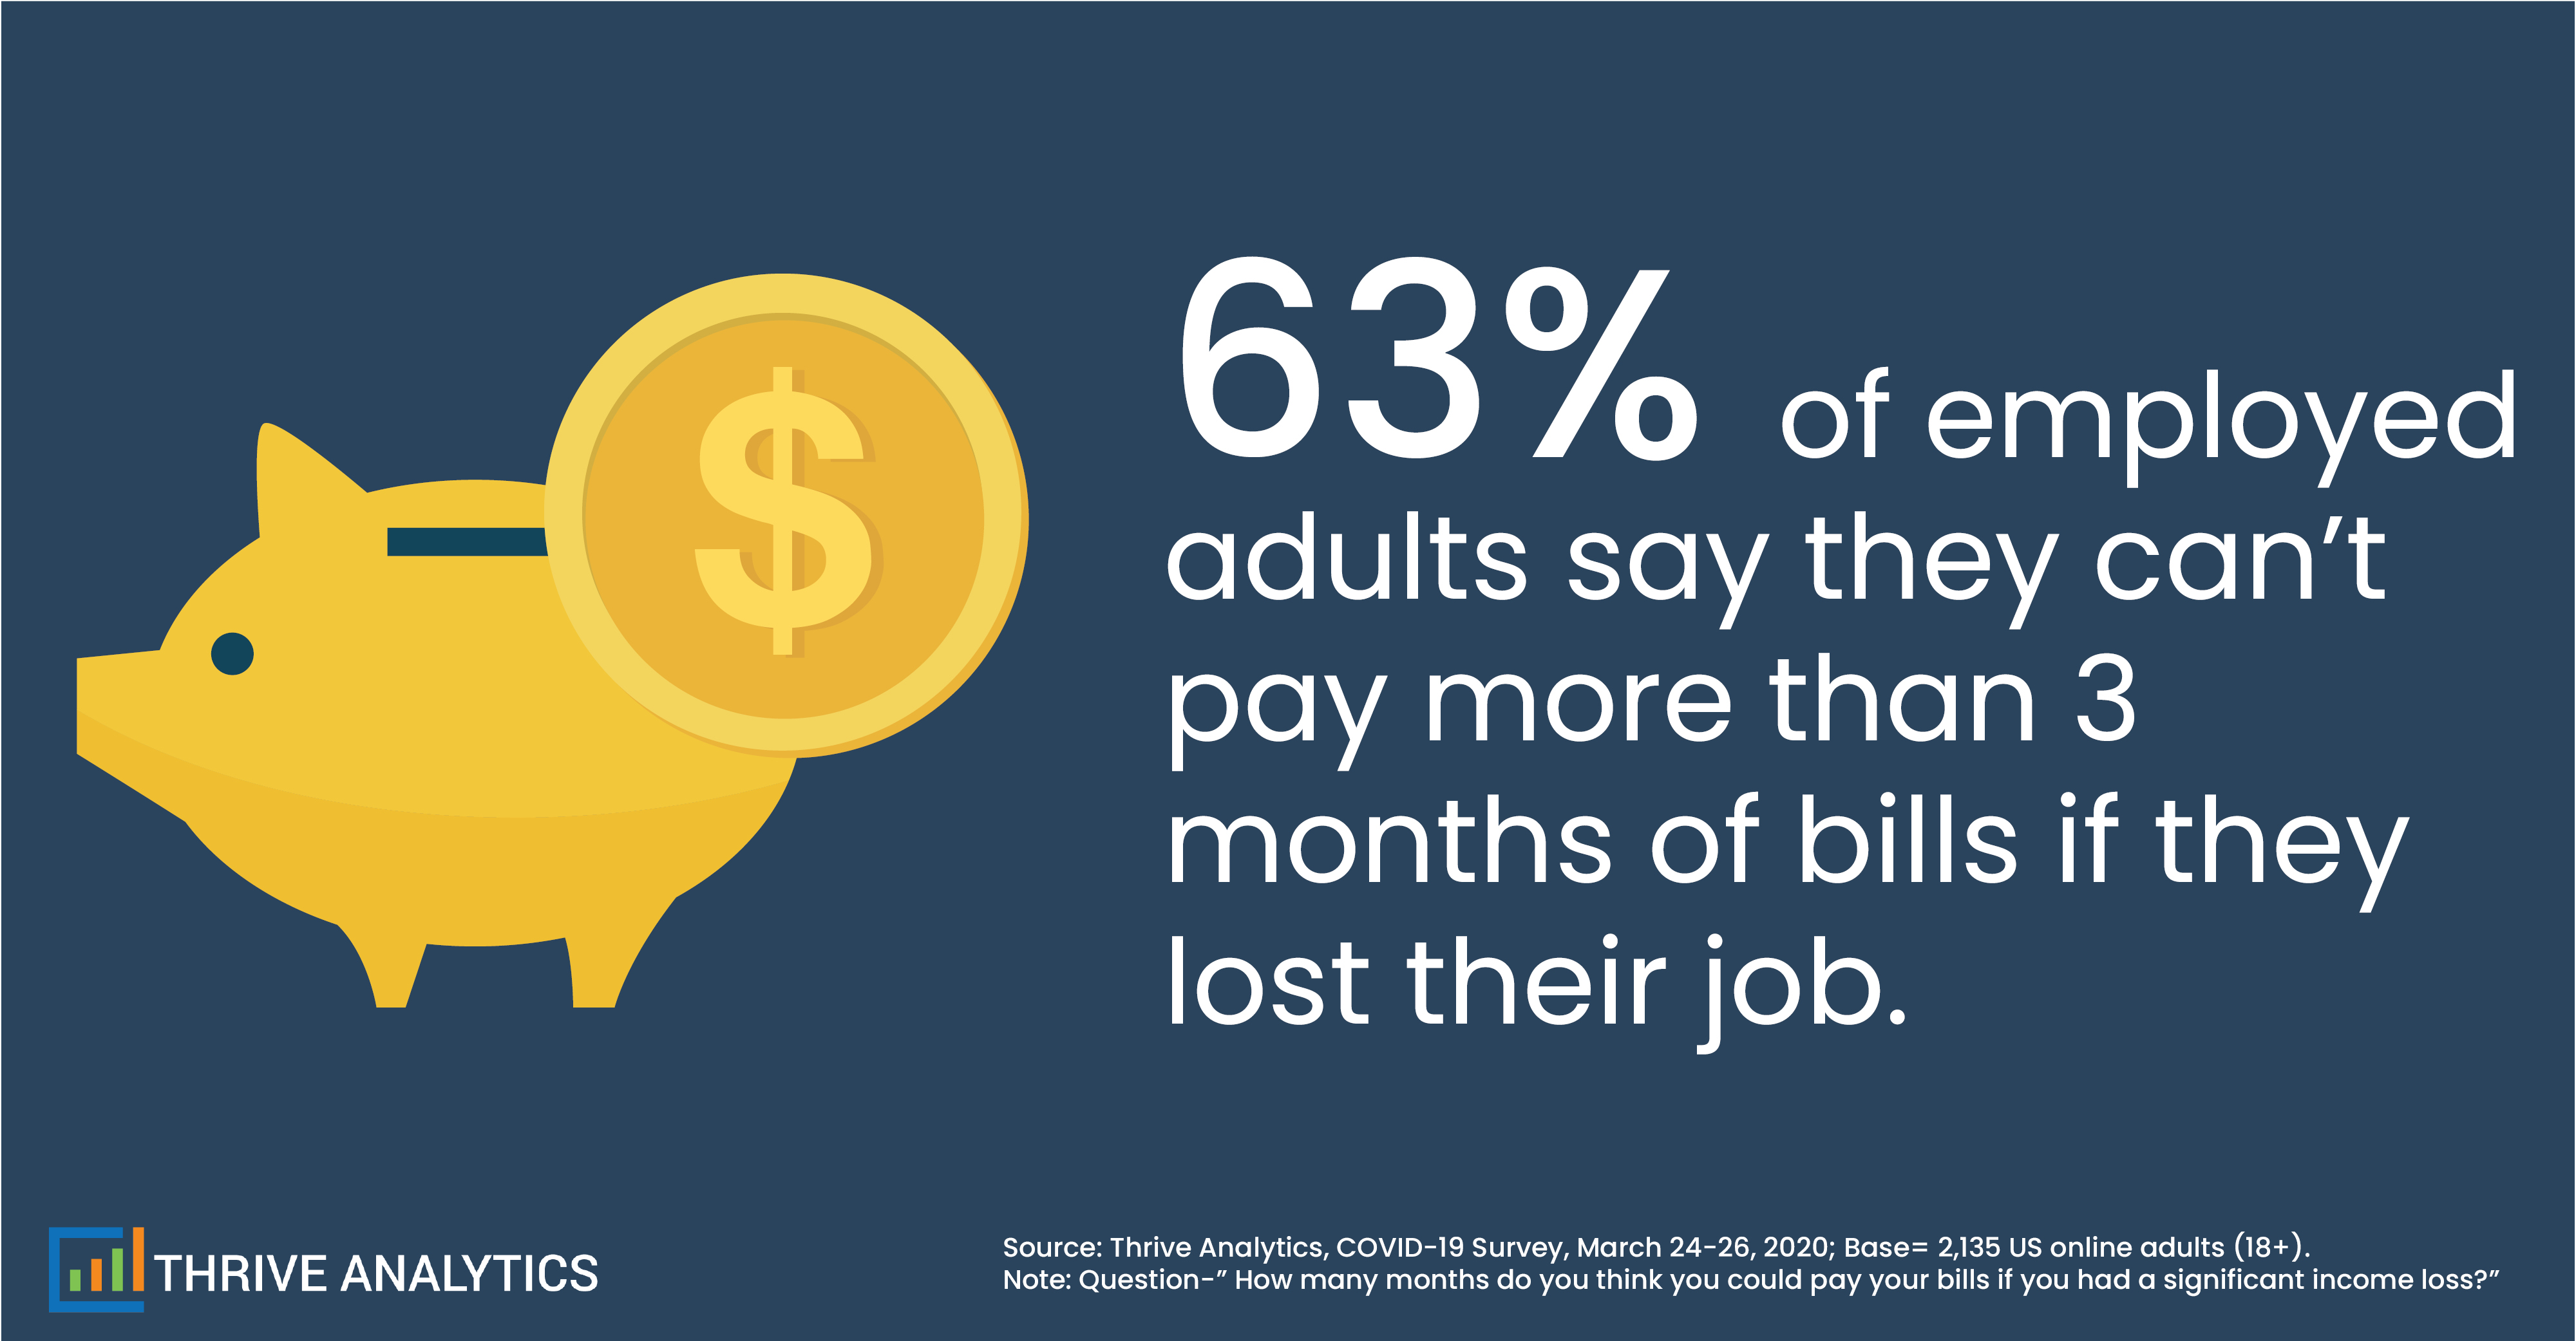 Amount of Time Employees Can Pay Their Bills With a Significant Income Loss